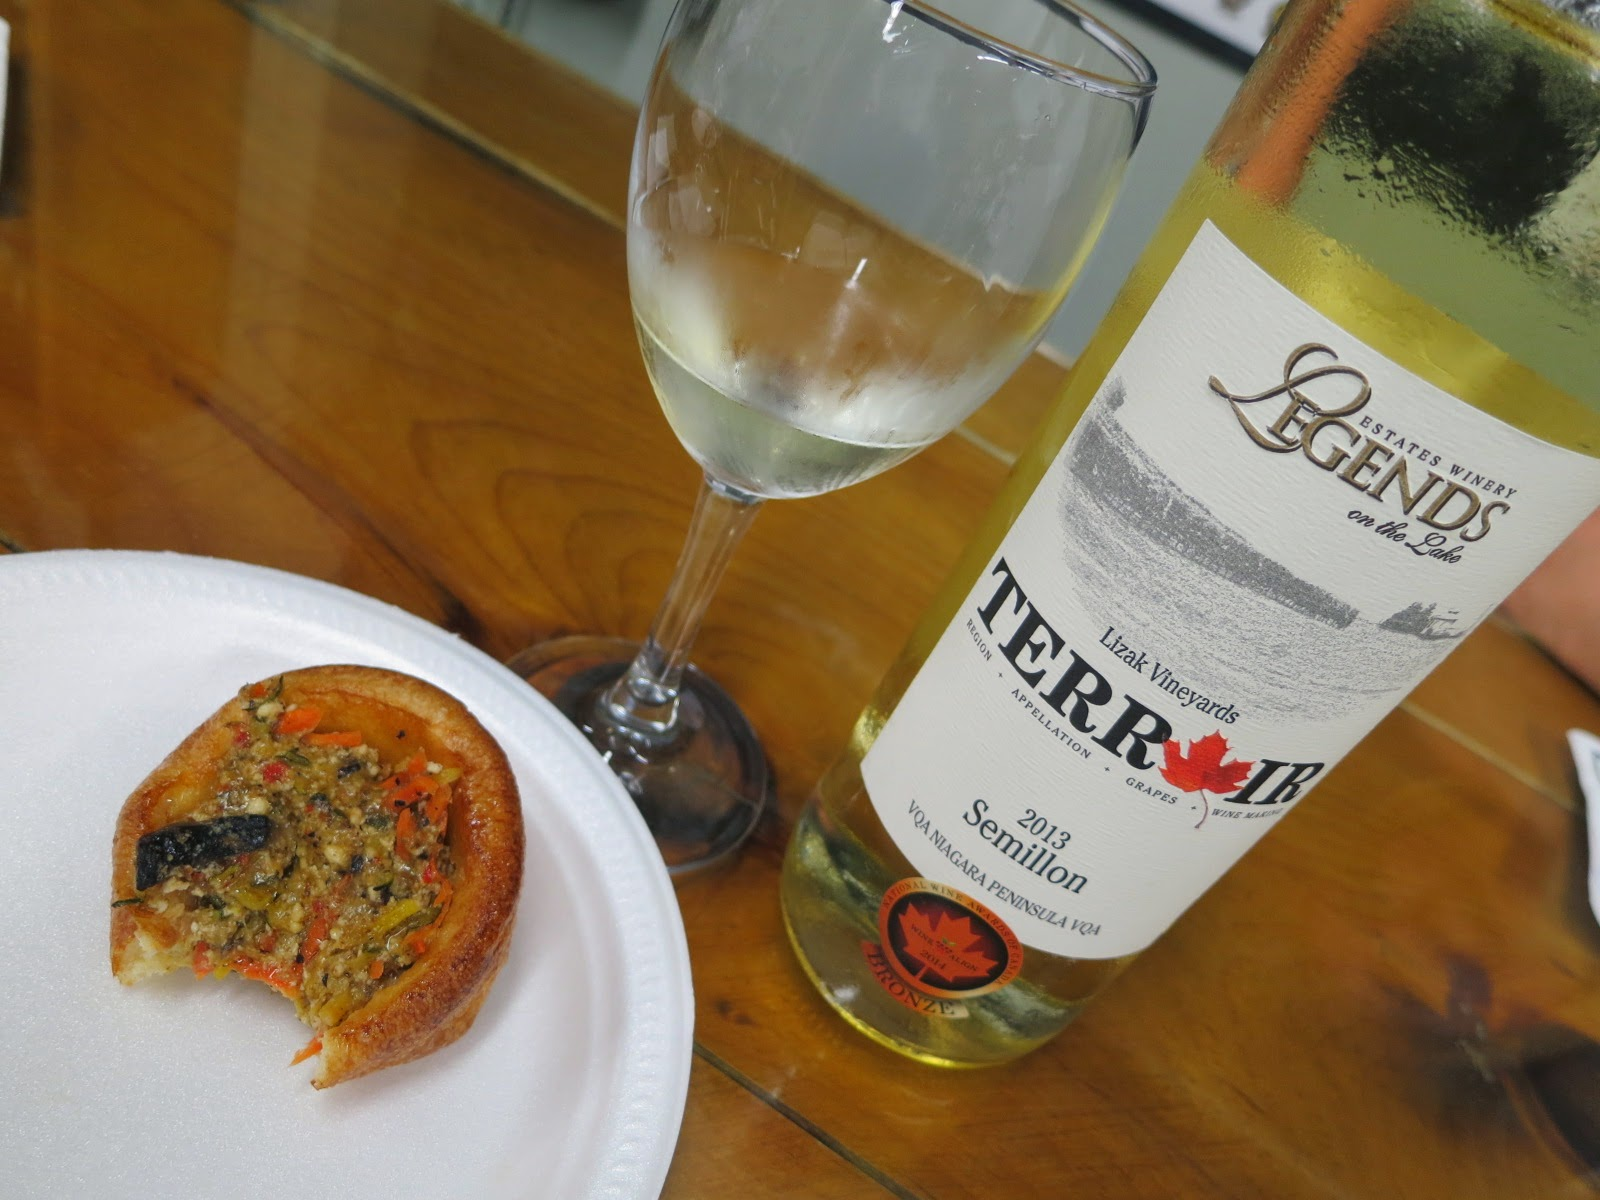 Enjoying vegetable lasagna cupcakes tops with 2010 Legends Estates Semillon from Lizak Vineyard. VQA Niagara Peninsula